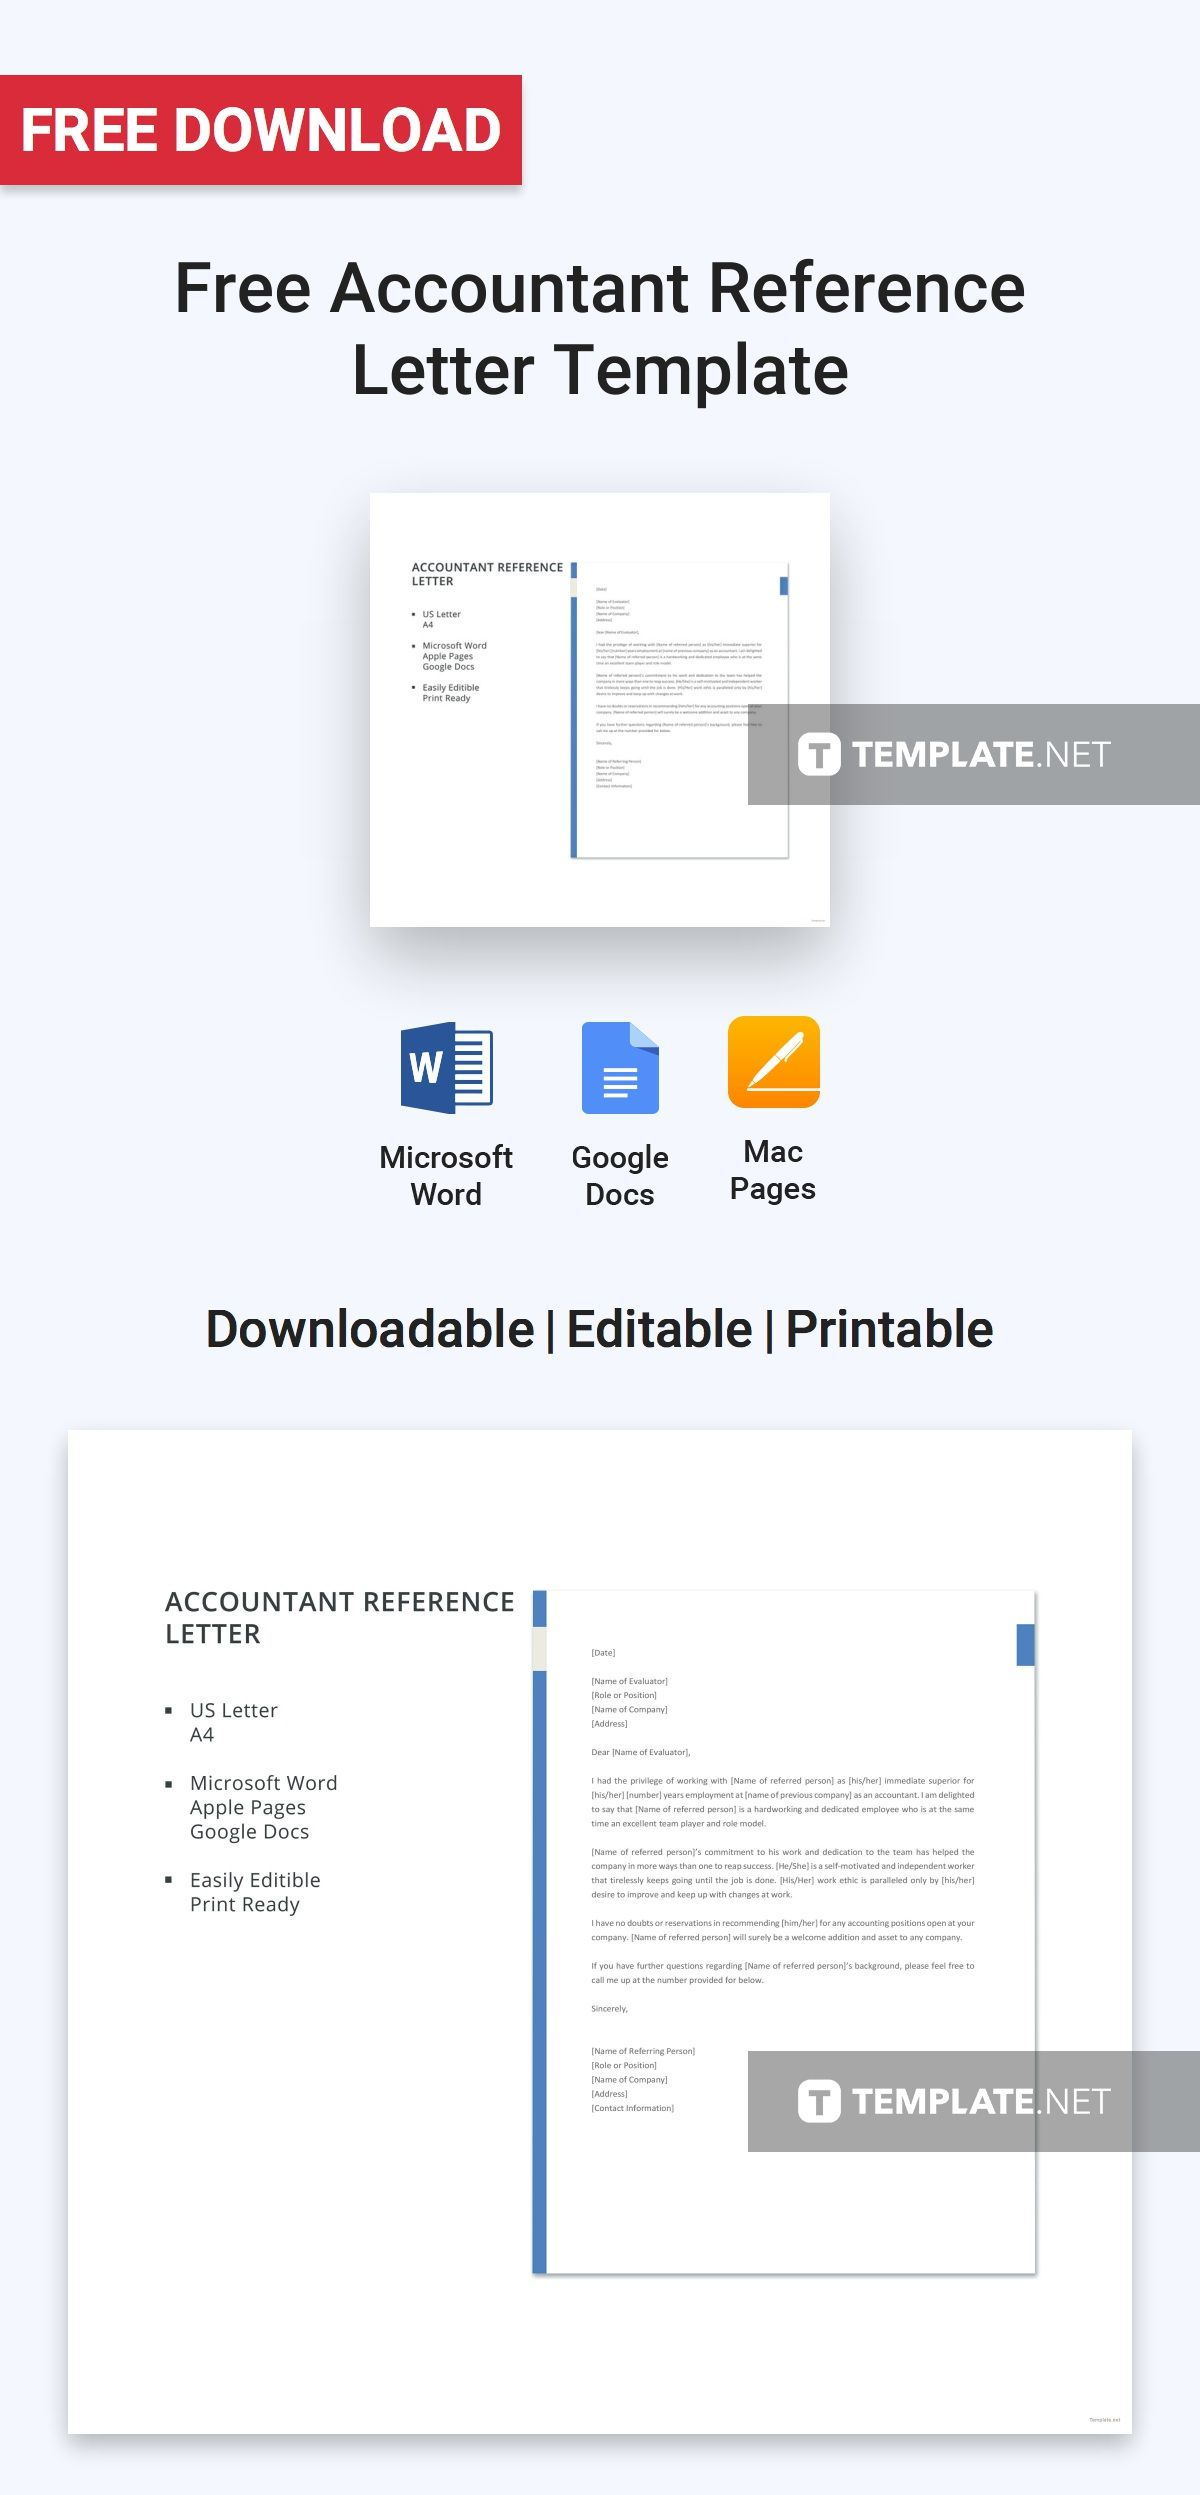 Free accountant reference letter in 2018 free letter templates free accountant reference letter in 2018 free letter templates pinterest reference letter letter templates and template expocarfo Image collections